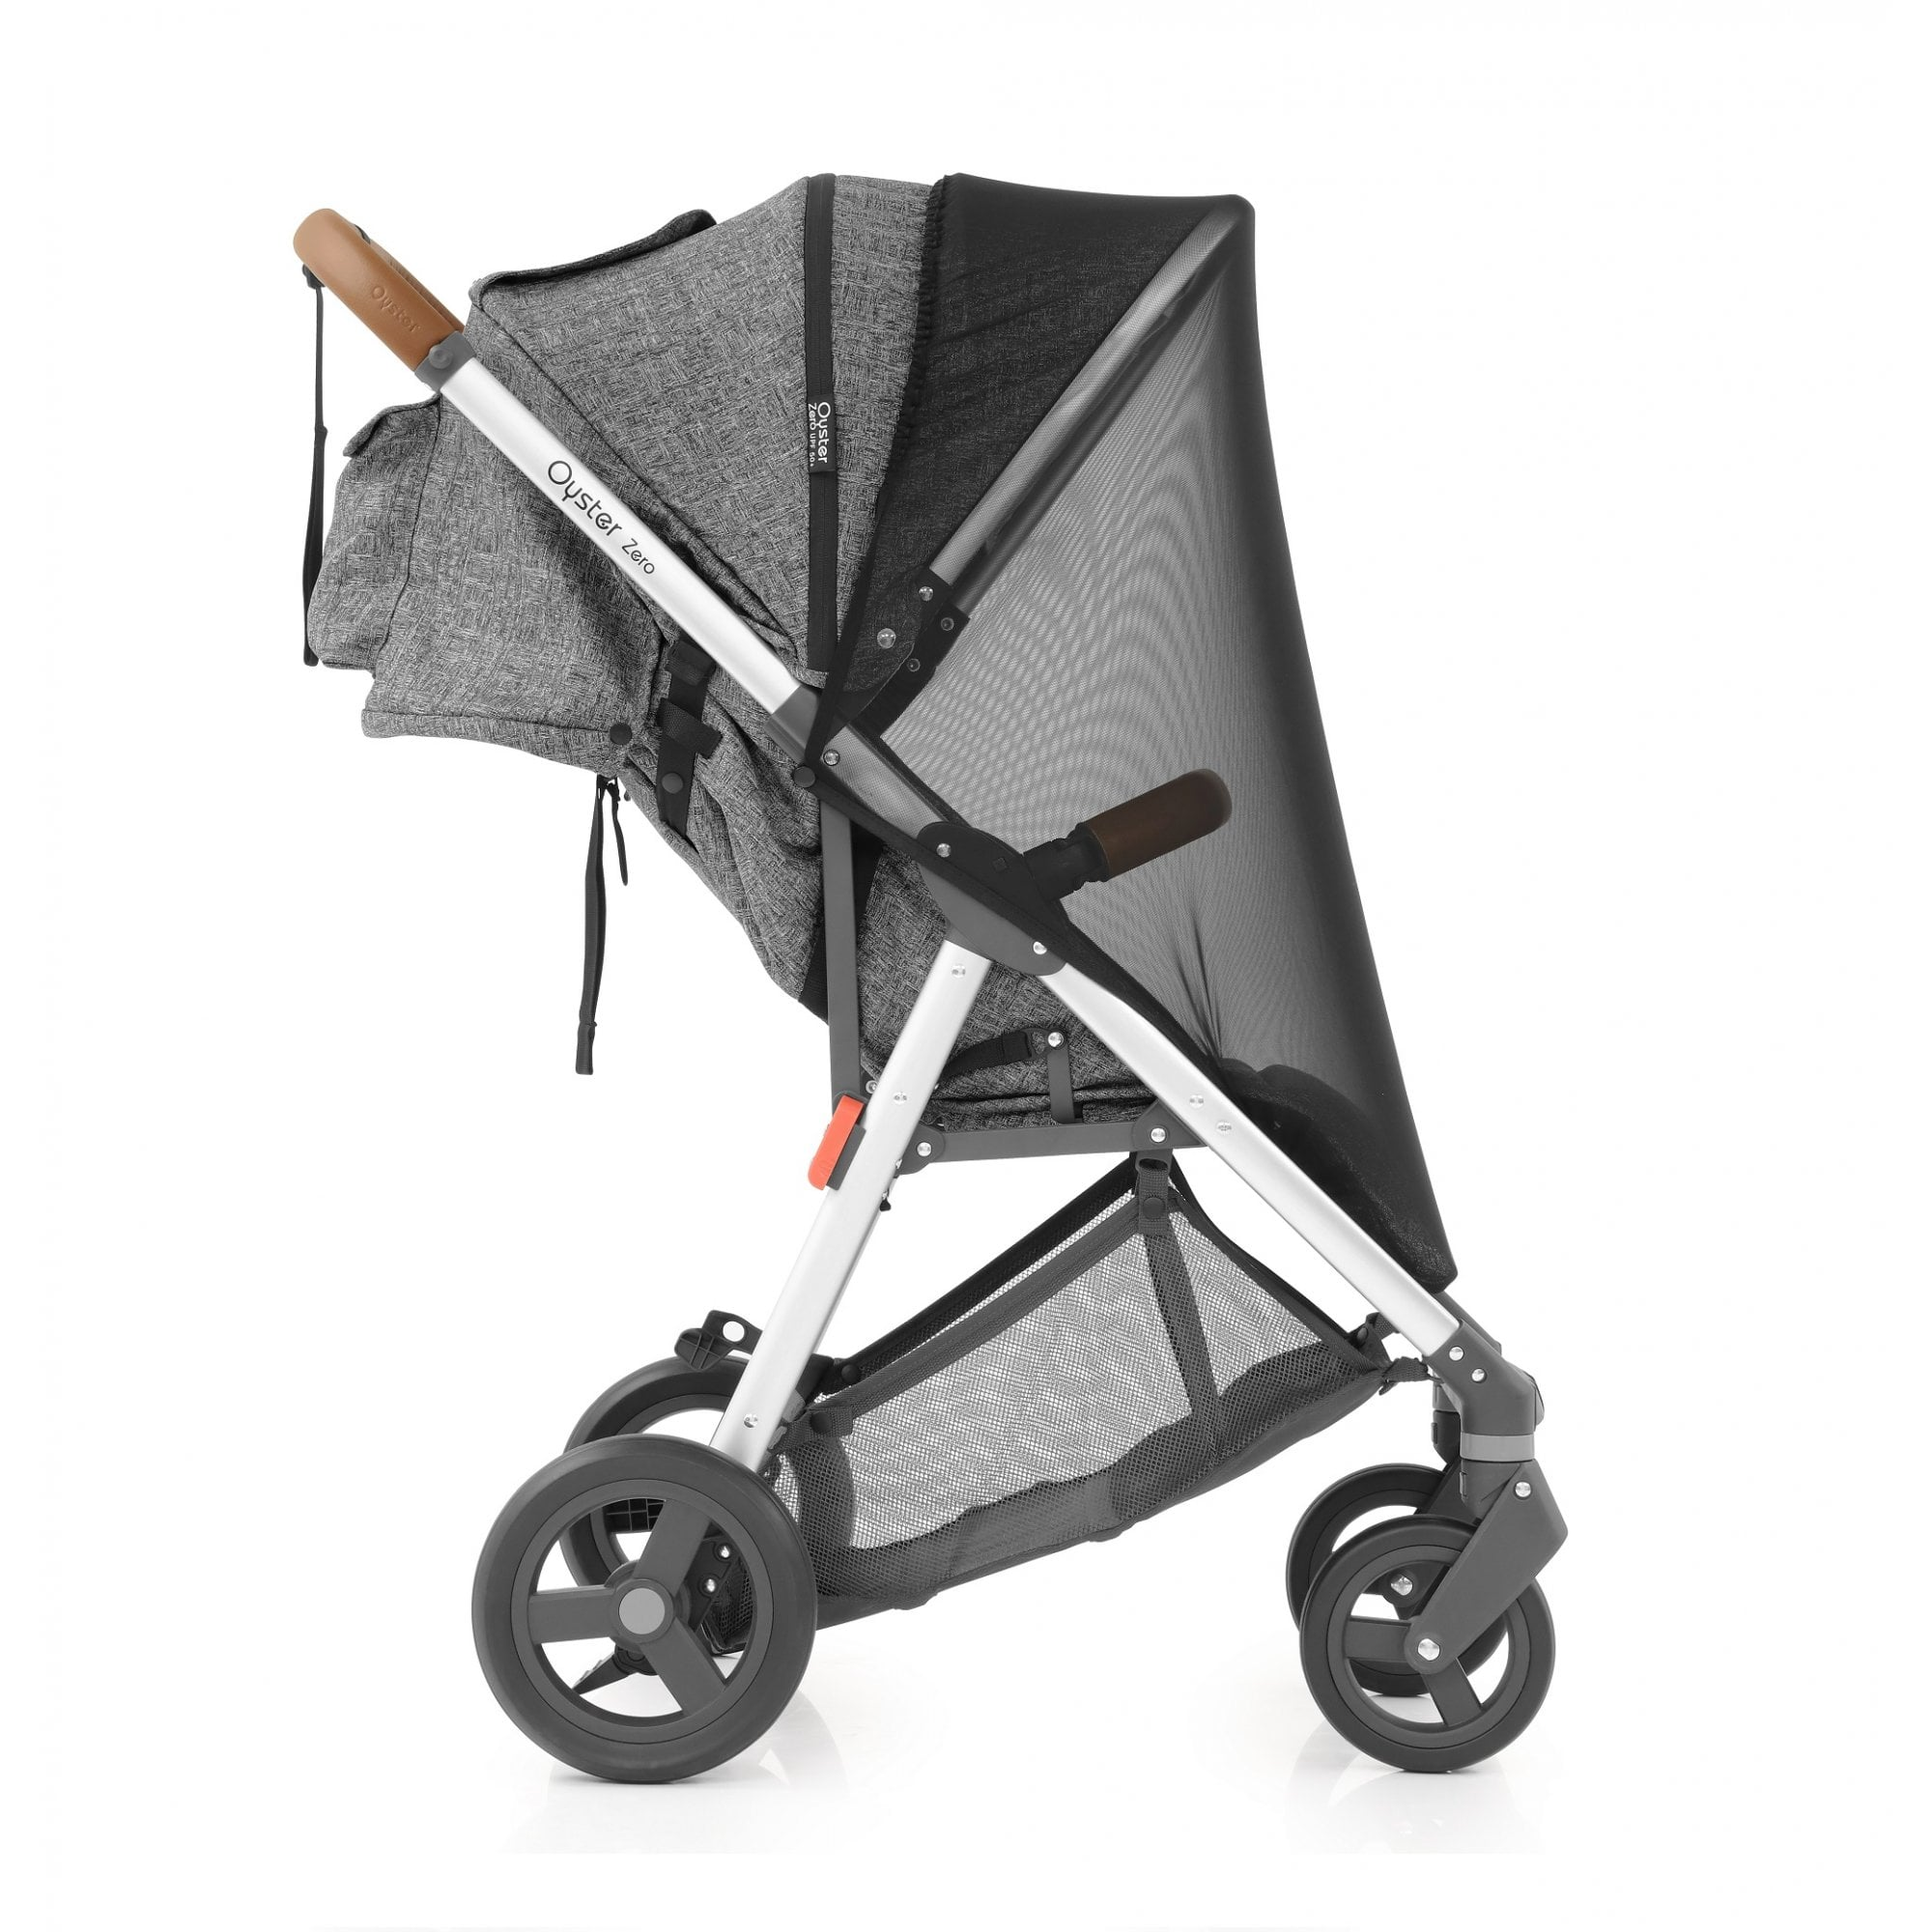 Fits Stroller Seat Unit and Carry Cot Oyster 3 Pushchair Insect Net